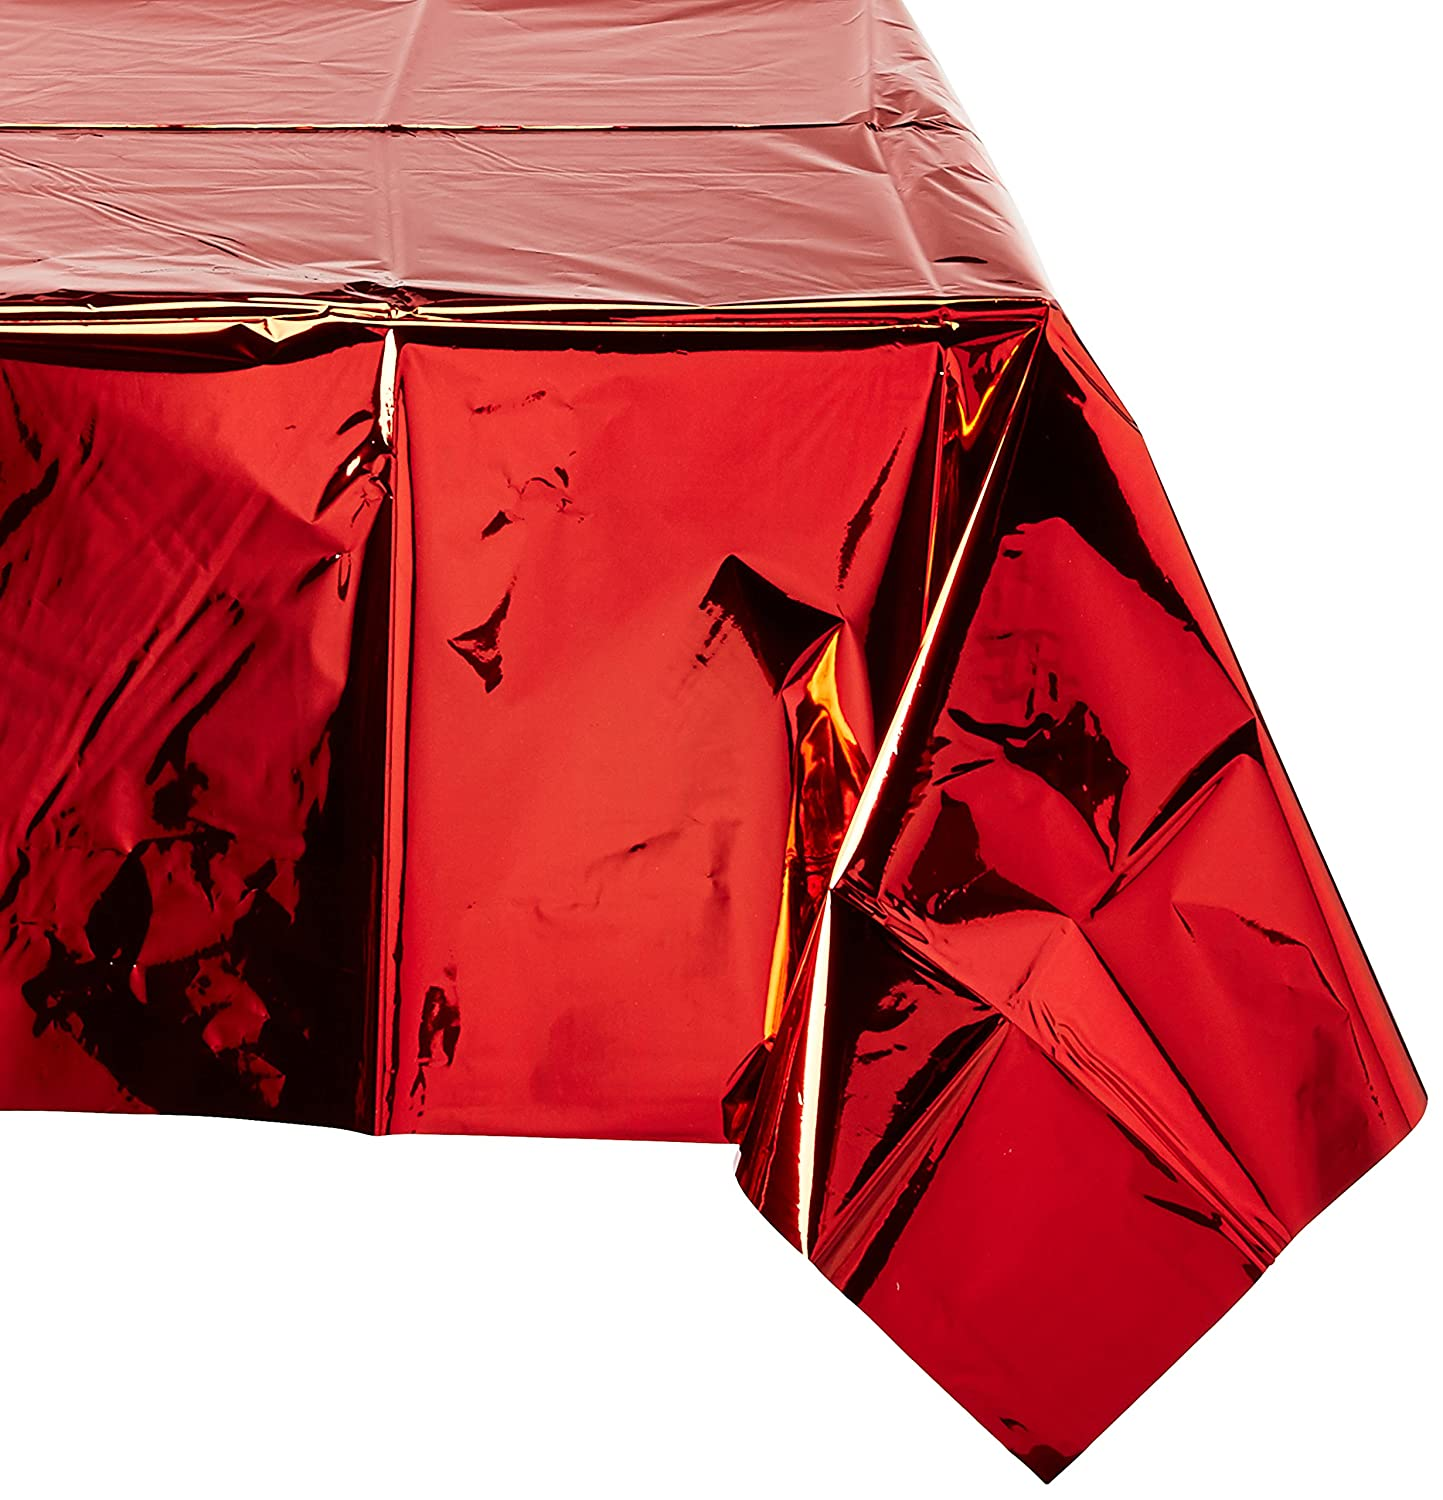 Amscan Red Metallic Table Cover | Party Decor | 6 Ct.